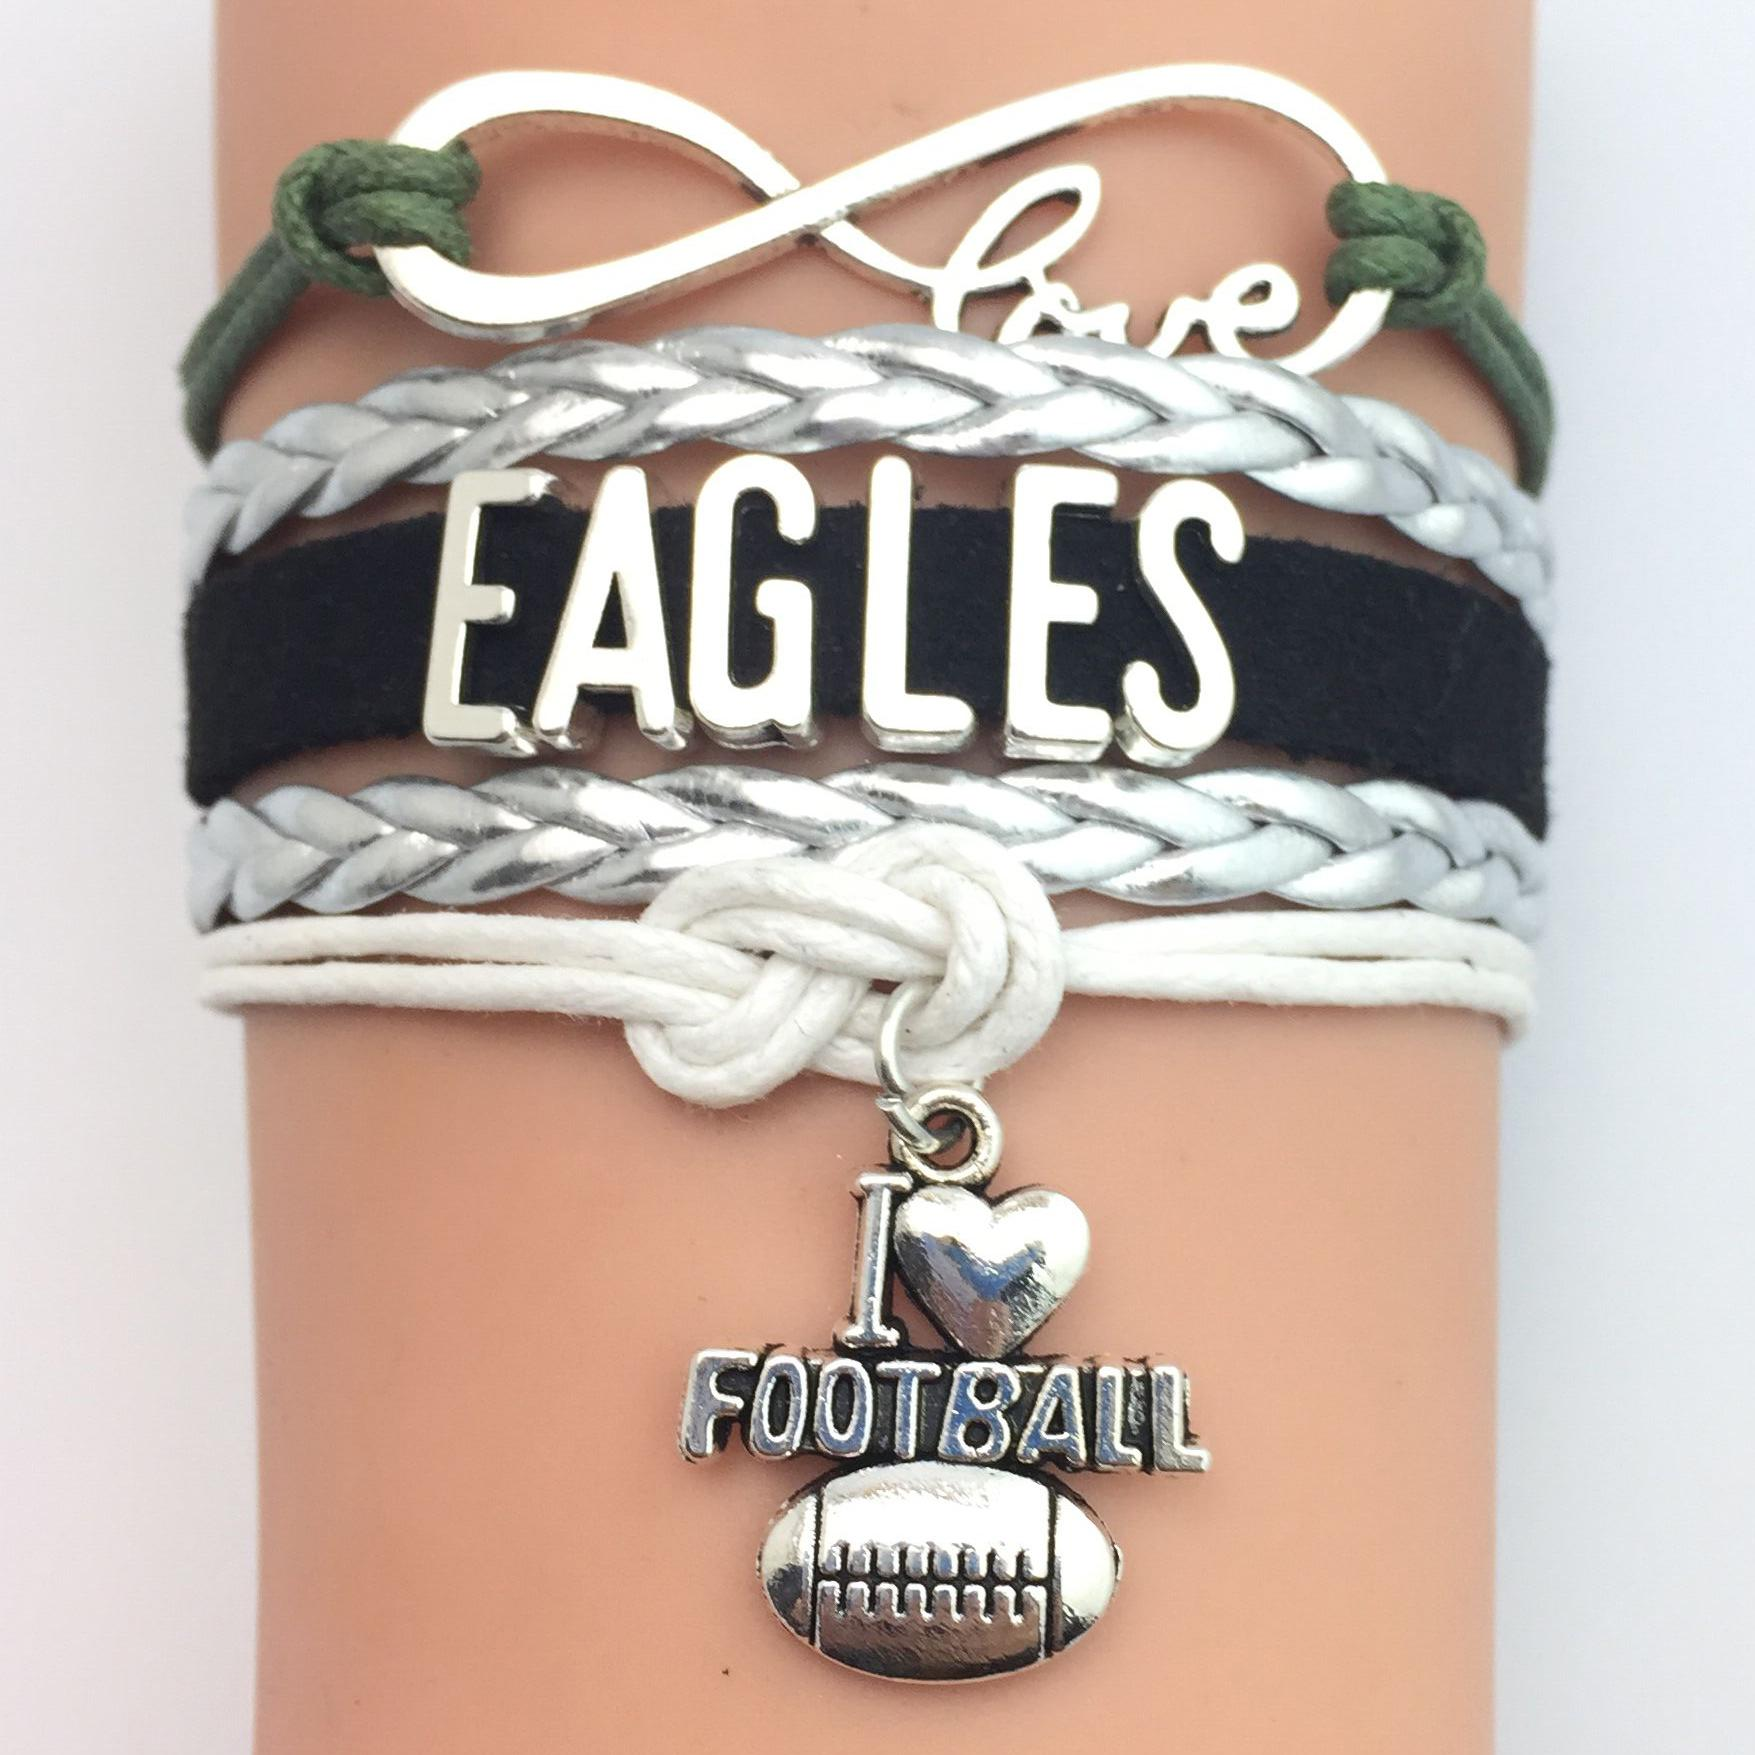 cheer jewelry il cheerleader coach squad p bracelet fullxfull class cheerleading team cheerleaders gift of bangle for